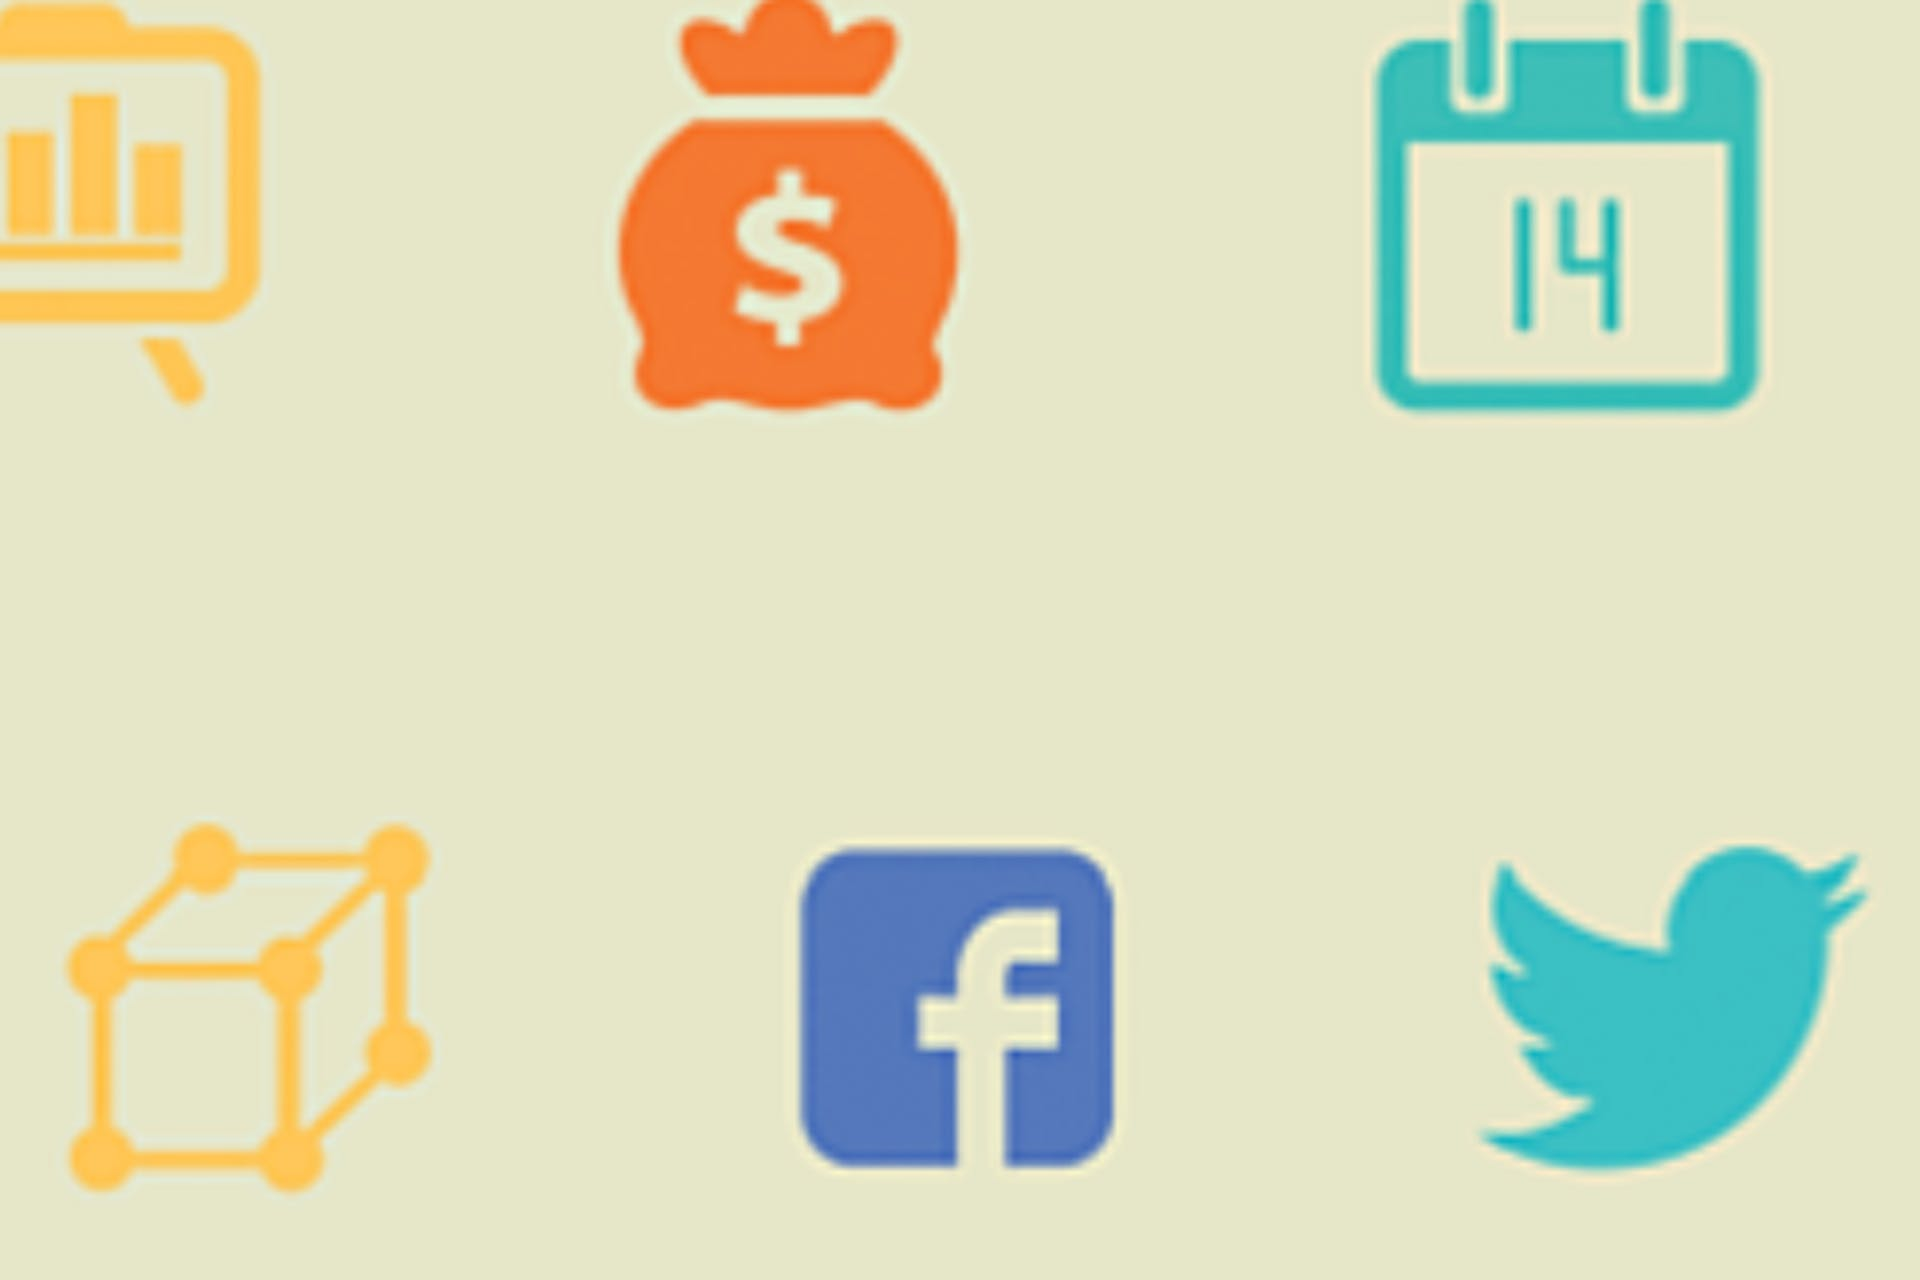 5 ways to generate more revenue using social data